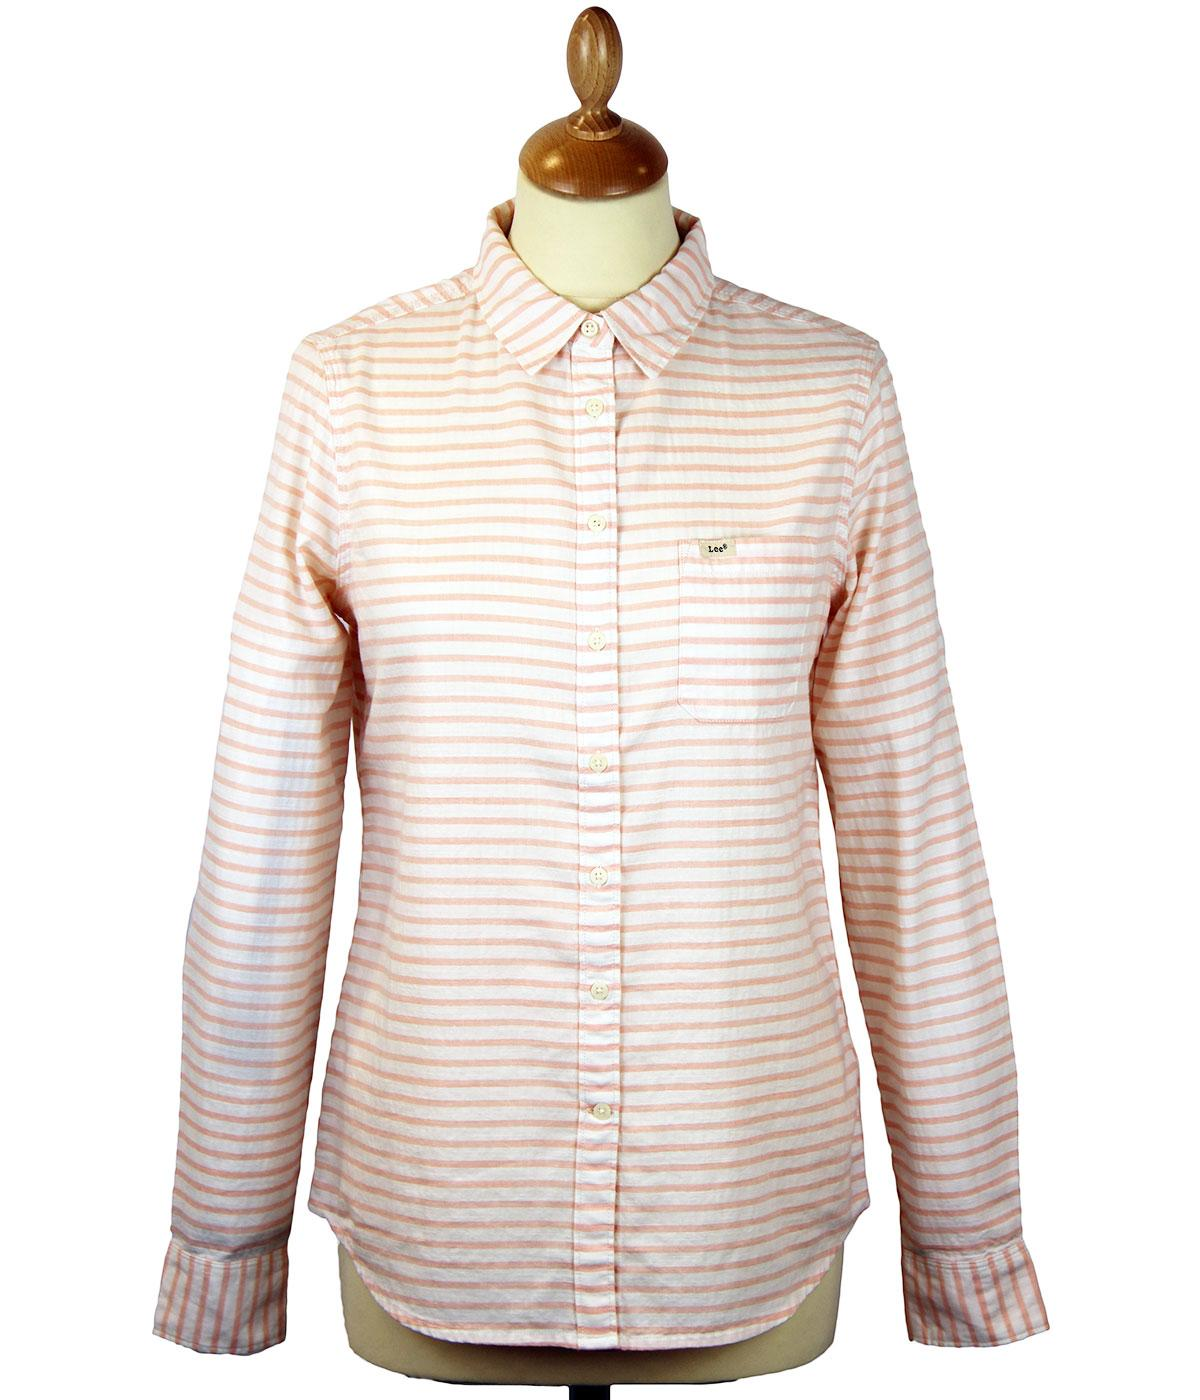 LEE Retro Horizontal Stripe Relaxed Fit Shirt (PB)